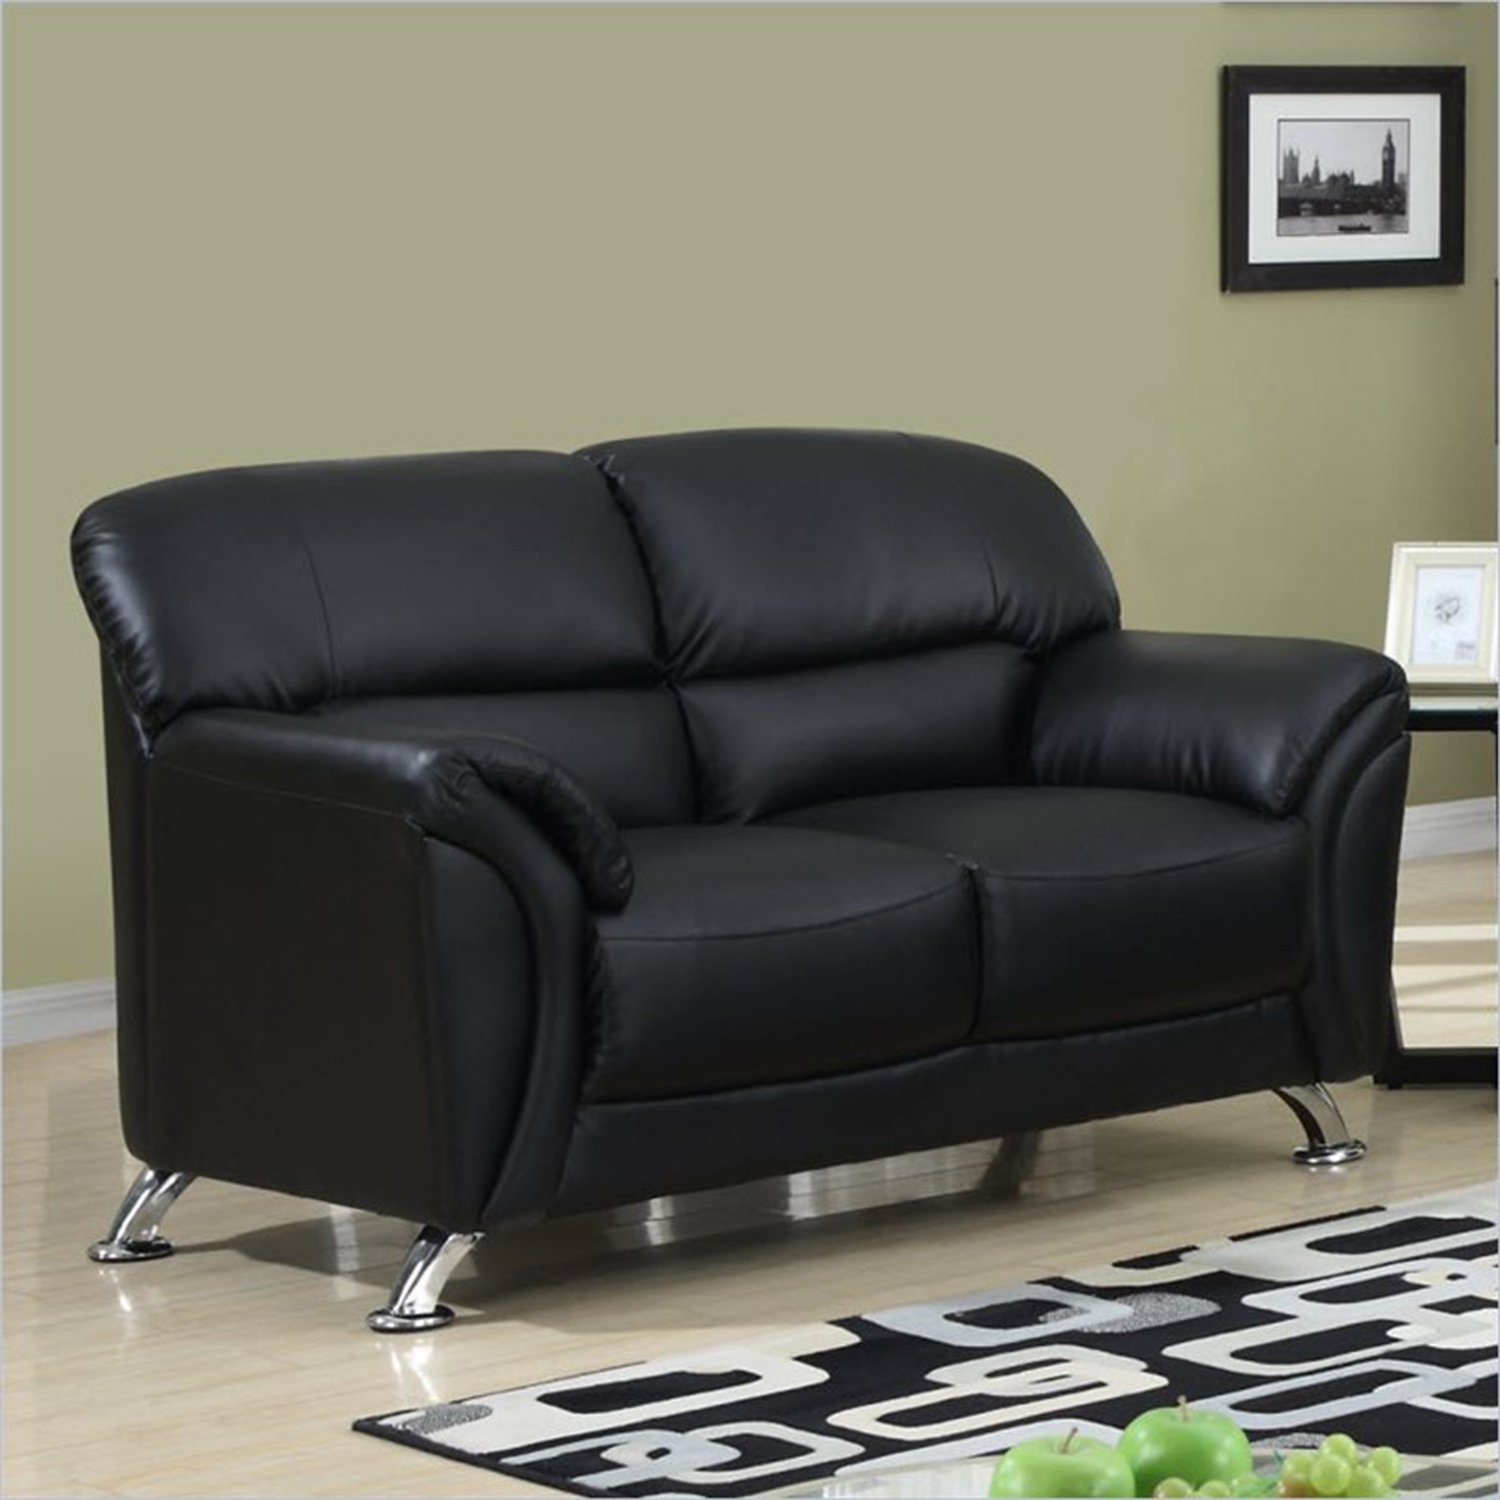 Maxwell Sofa Set in Black Leather Look - GLO-U9103-BL-SET